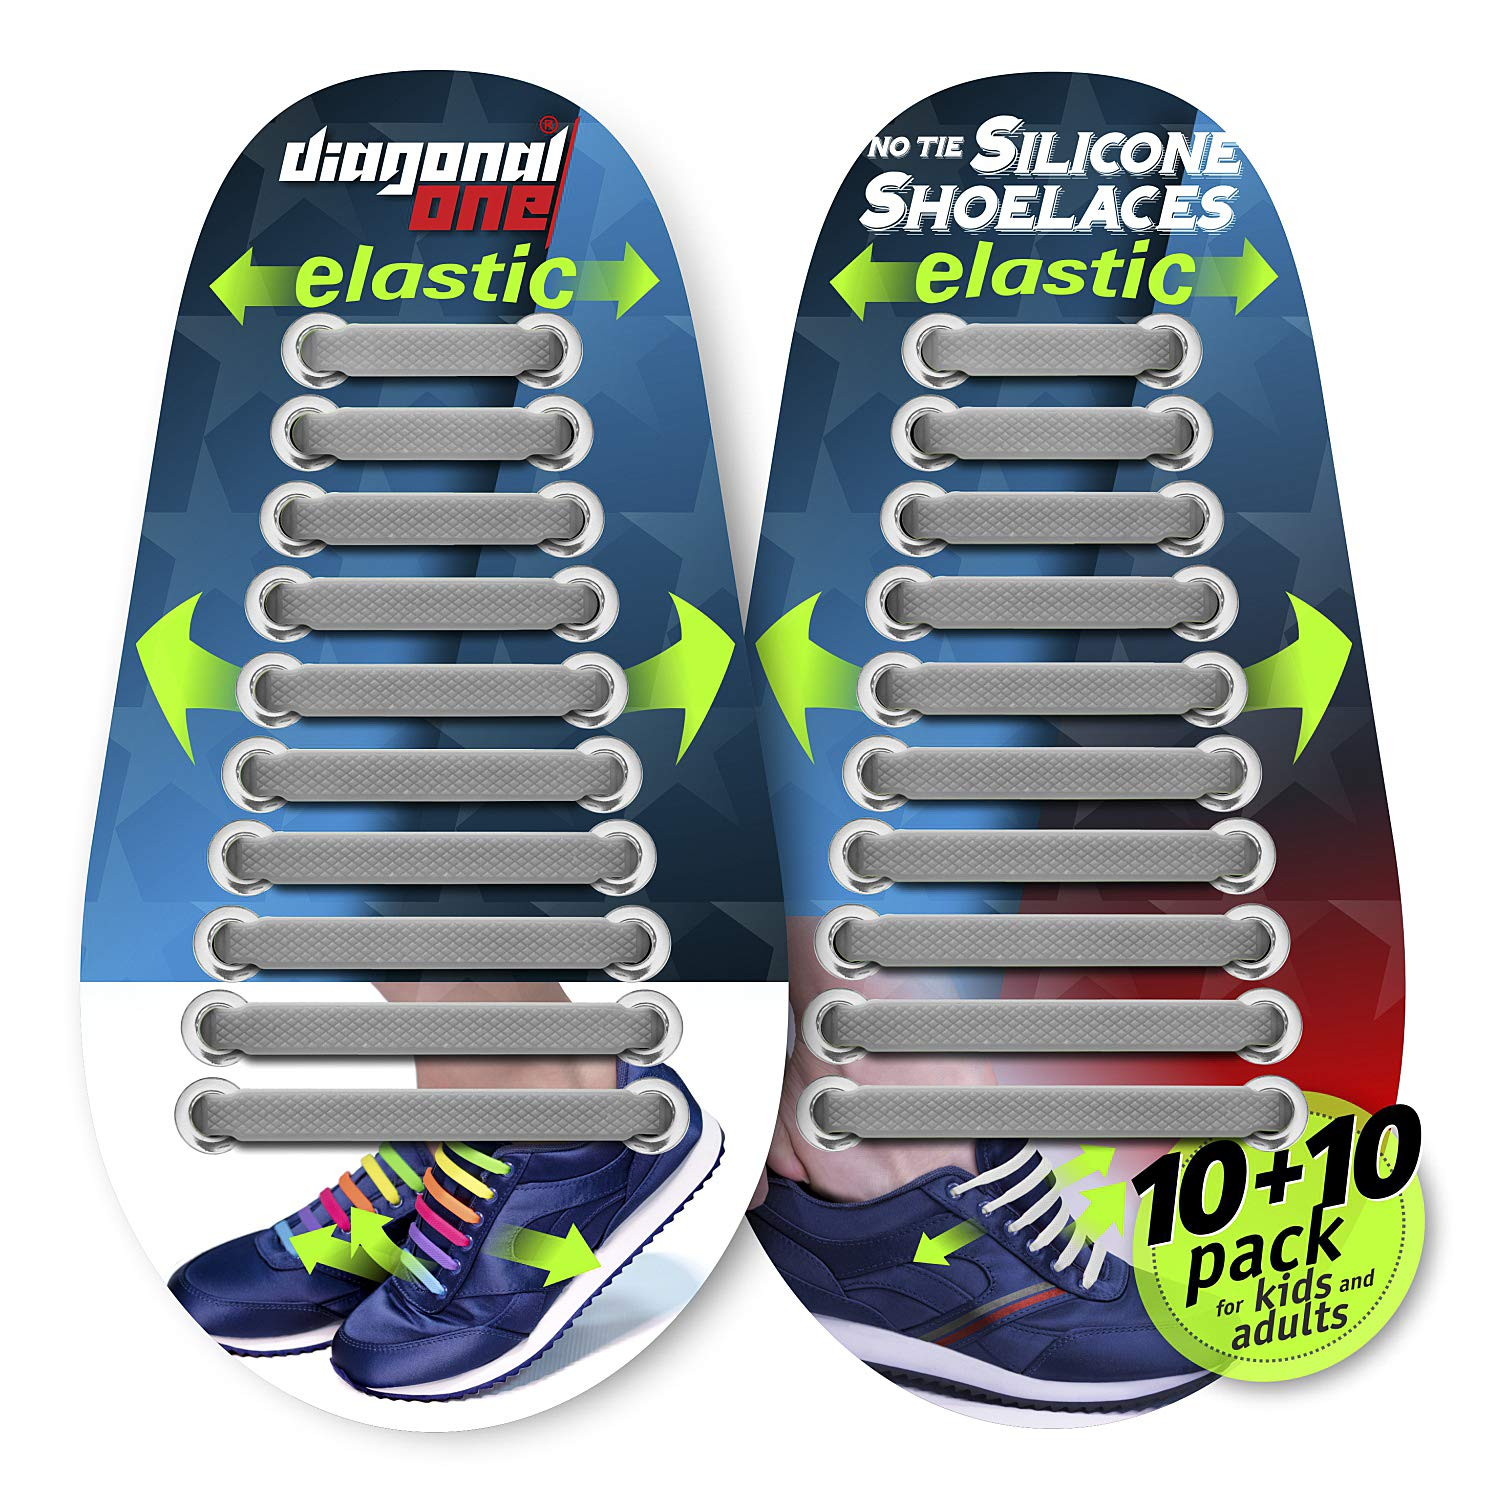 Diagonal One No Tie Shoelaces for Kids